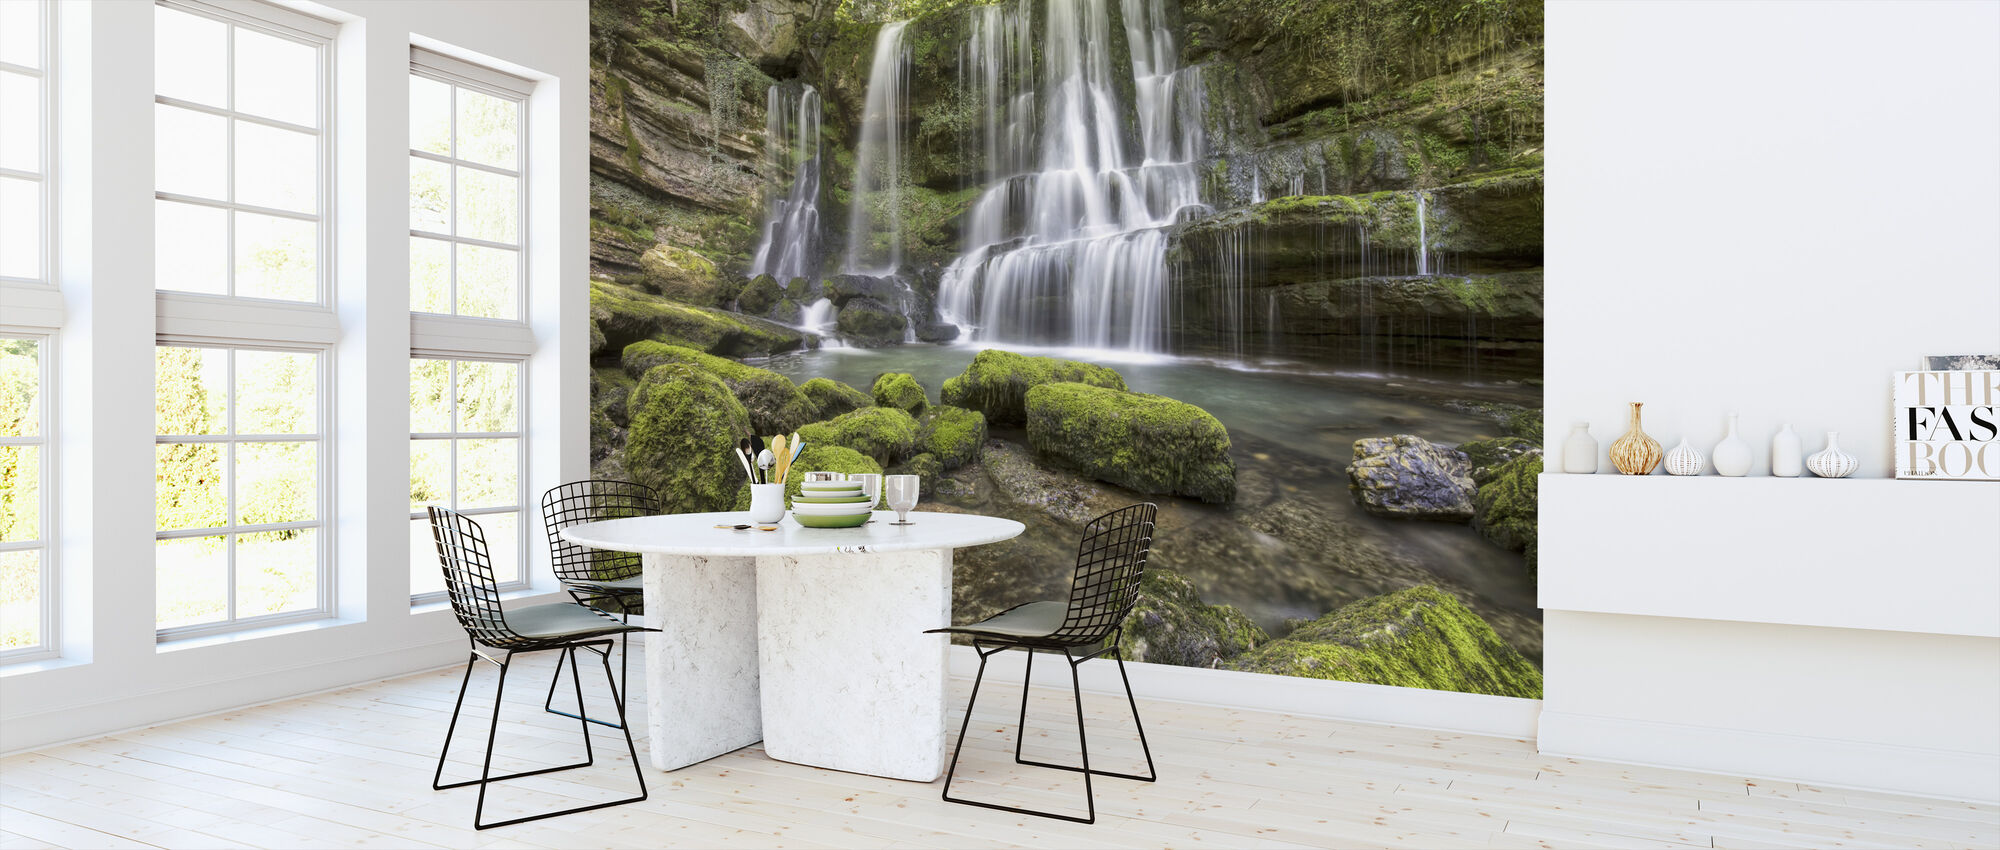 Waterfall of Verneau - Wallpaper - Kitchen